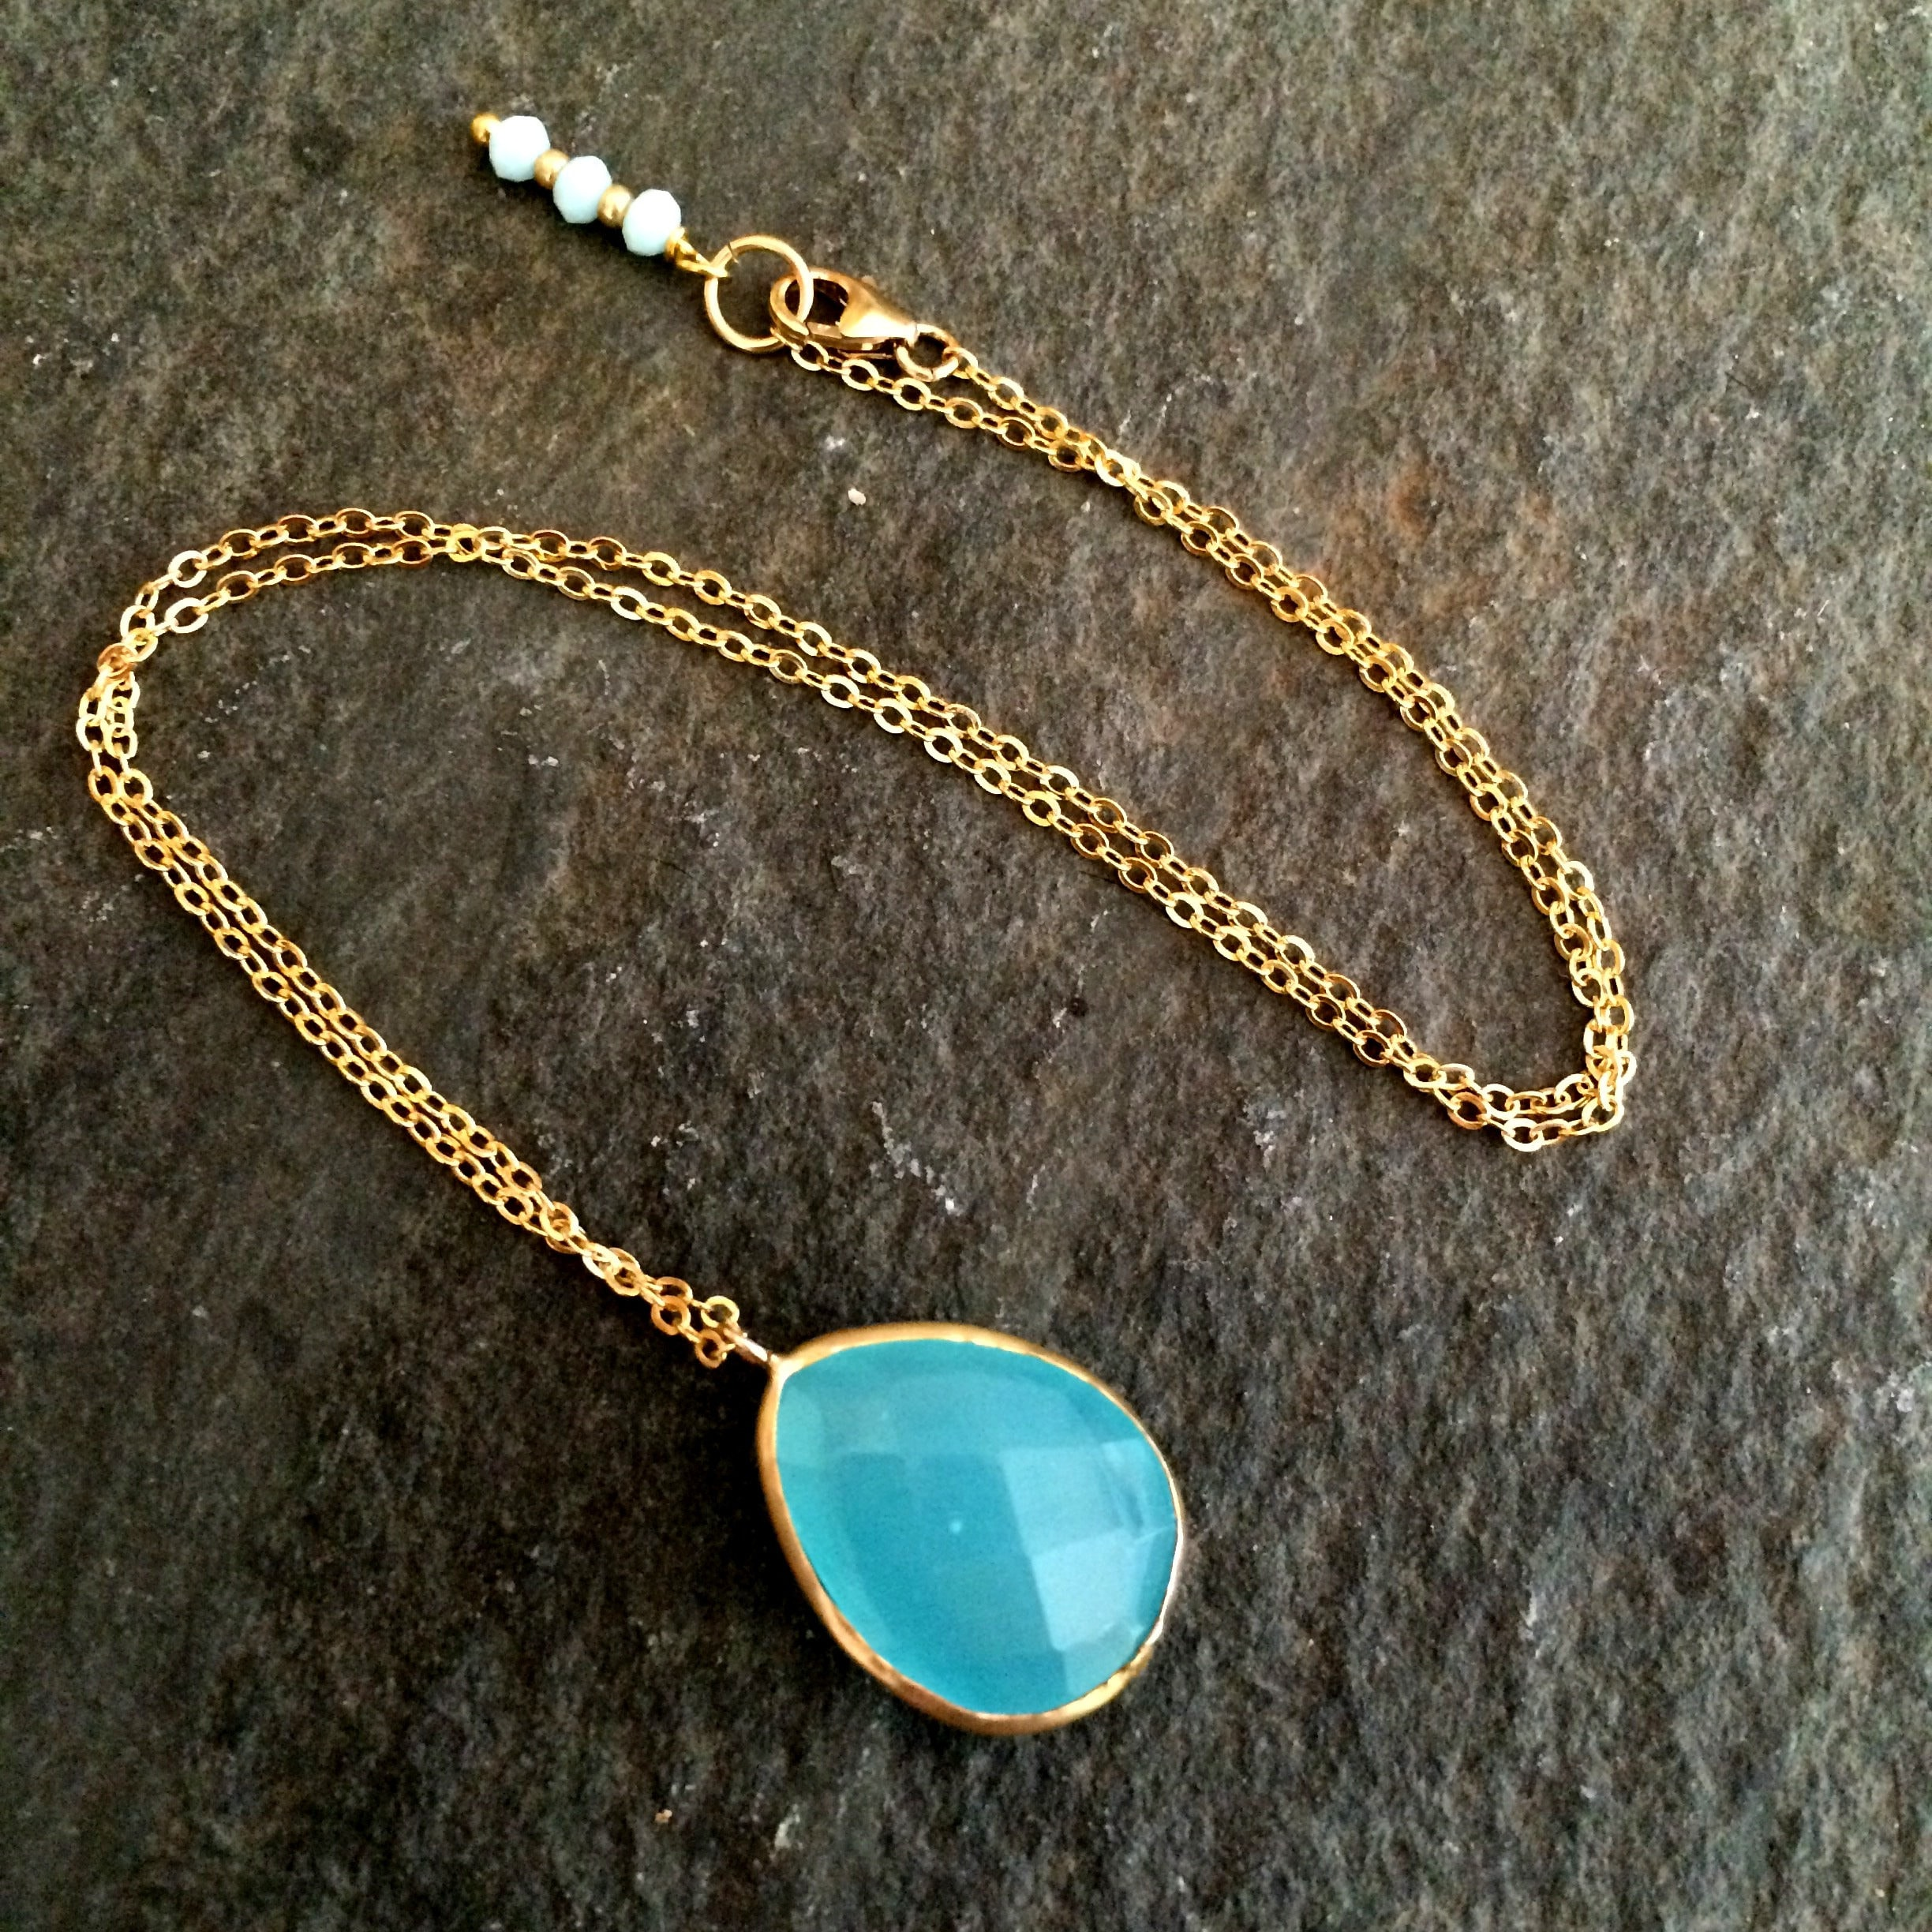 necklace cord life blue pale beach glass products fine surfgirl chalcedony pendant wanderlust sea wanderlustlife